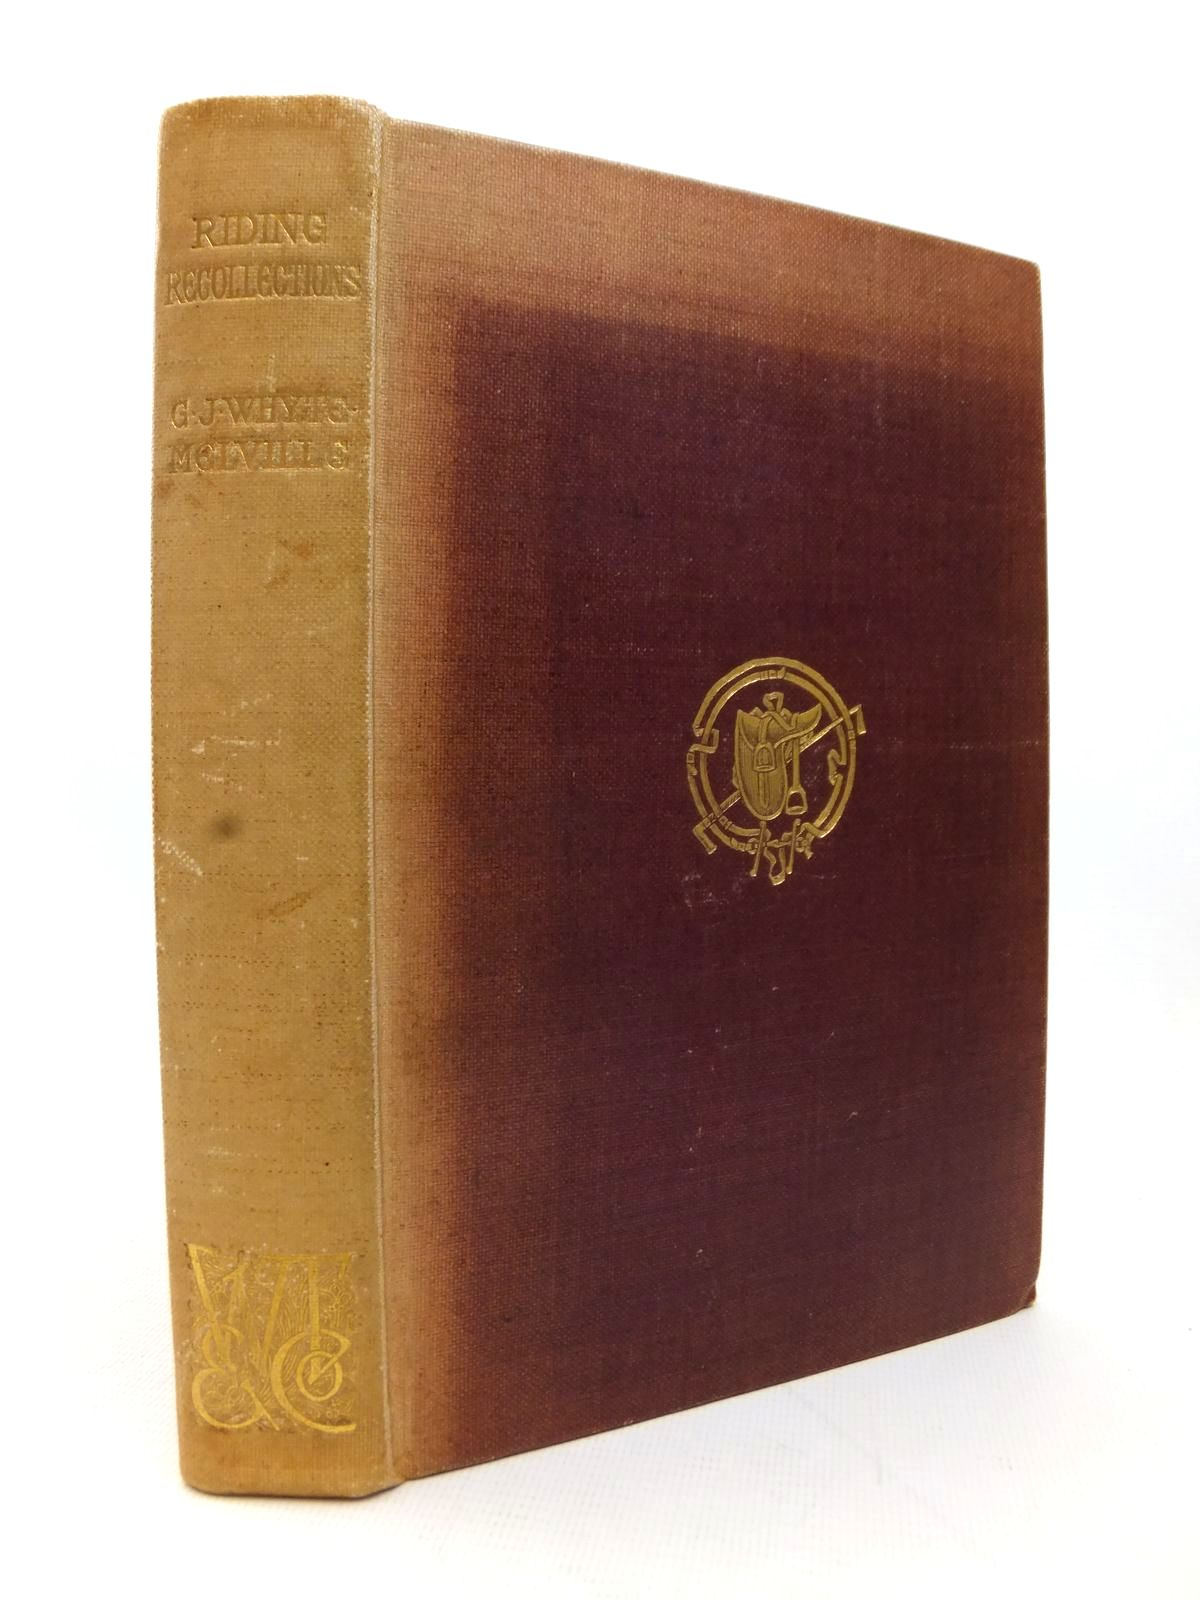 Photo of RIDING RECOLLECTIONS written by Whyte-Melville, G.J. illustrated by Thomson, Hugh published by W. Thacker & Co. (STOCK CODE: 1814090)  for sale by Stella & Rose's Books